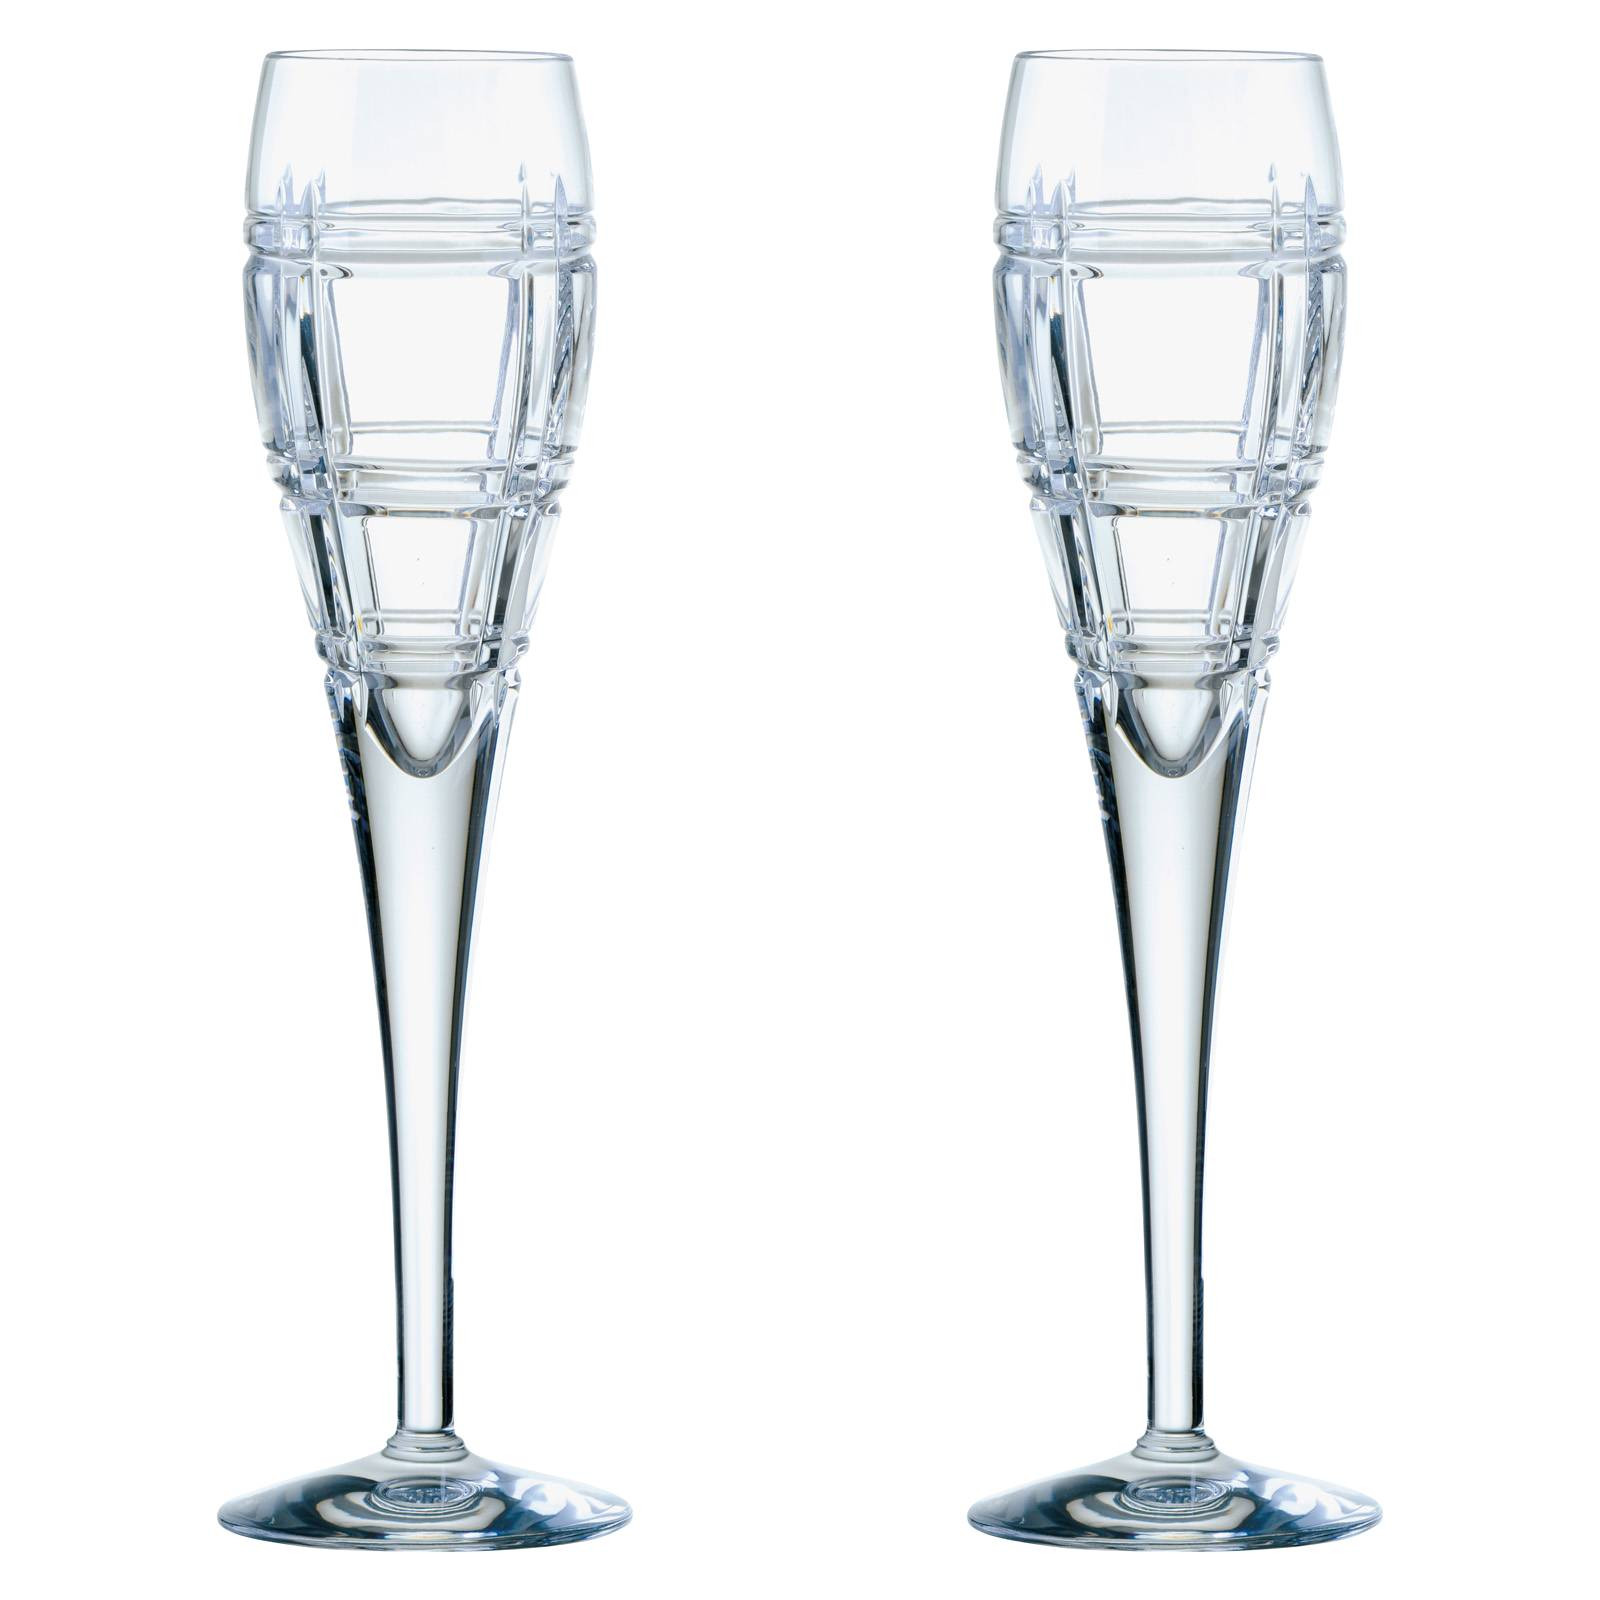 champagne glasses in vase of coolest 47 champagne glass decoration ideas wedding l com within champagne glass decoration ideas fresh celebrate with champagne of coolest 47 champagne glass decoration ideas